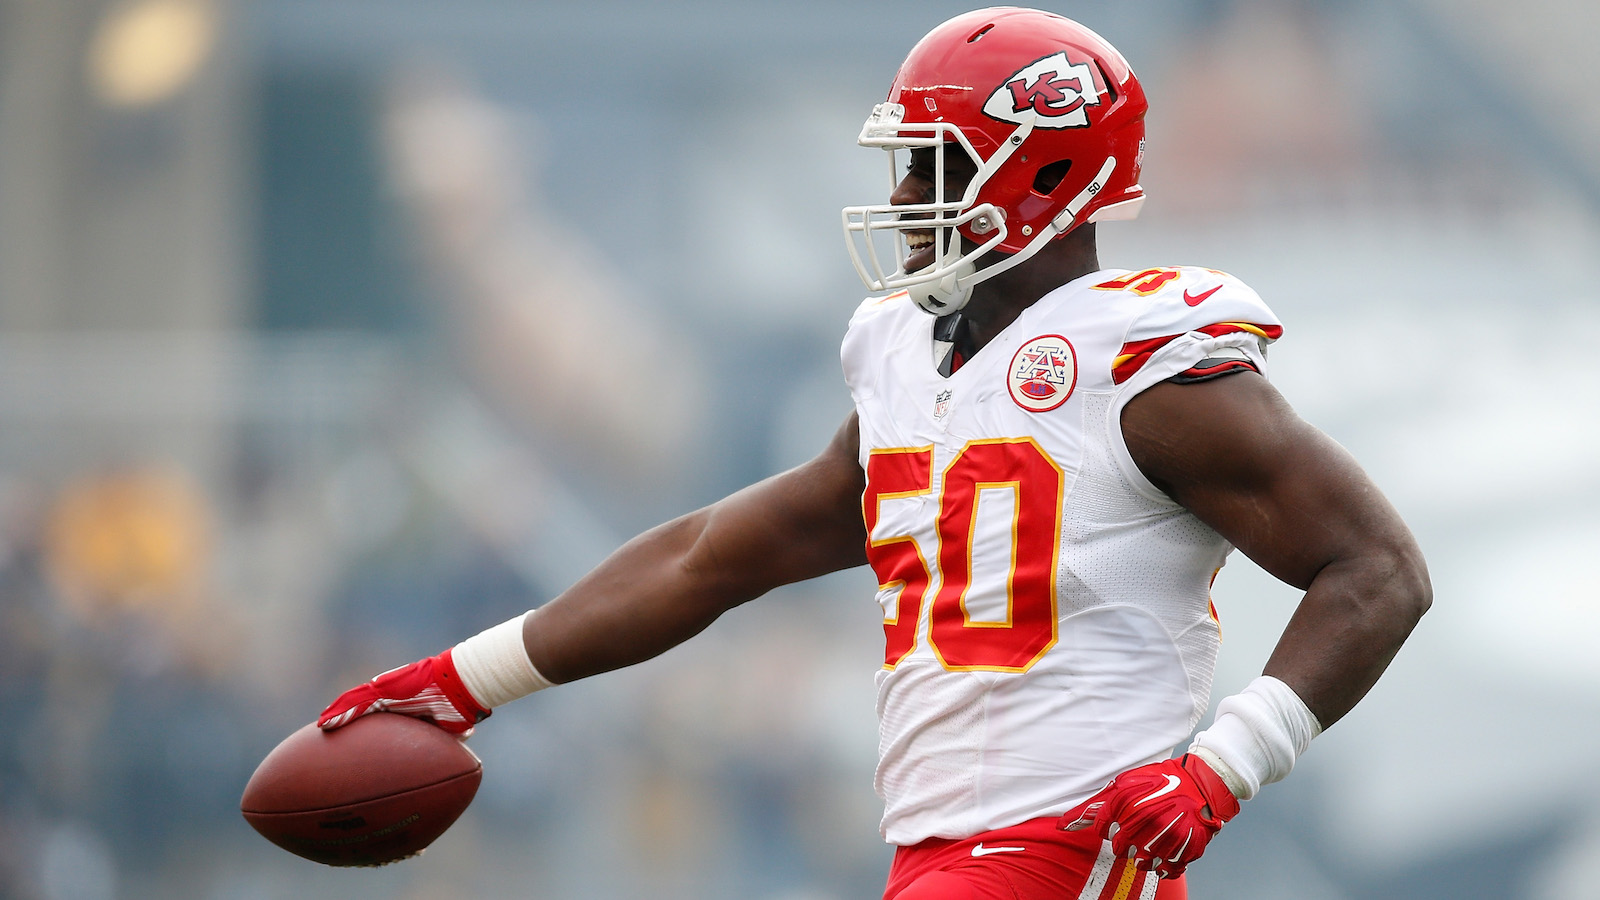 Chiefs place OLB Justin Houston on the PUP list, out at least six weeks